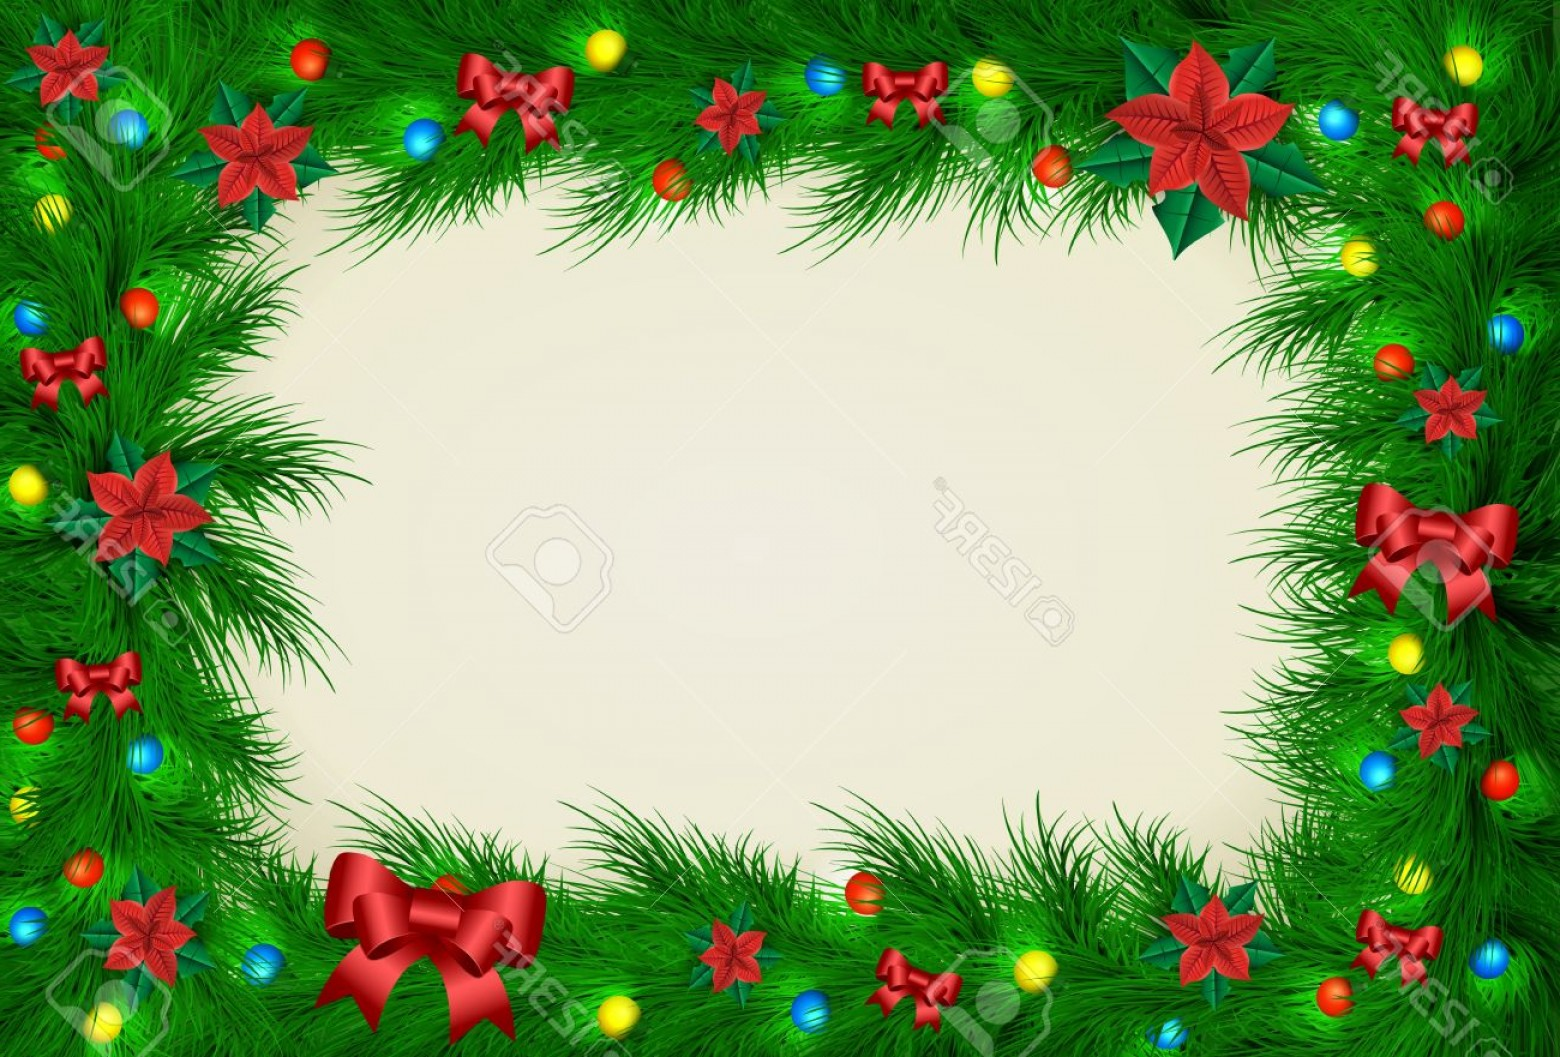 Christmas Horizontal Vector: Photostock Vector Christmas Vector Frame For Picture And Text Horizontal